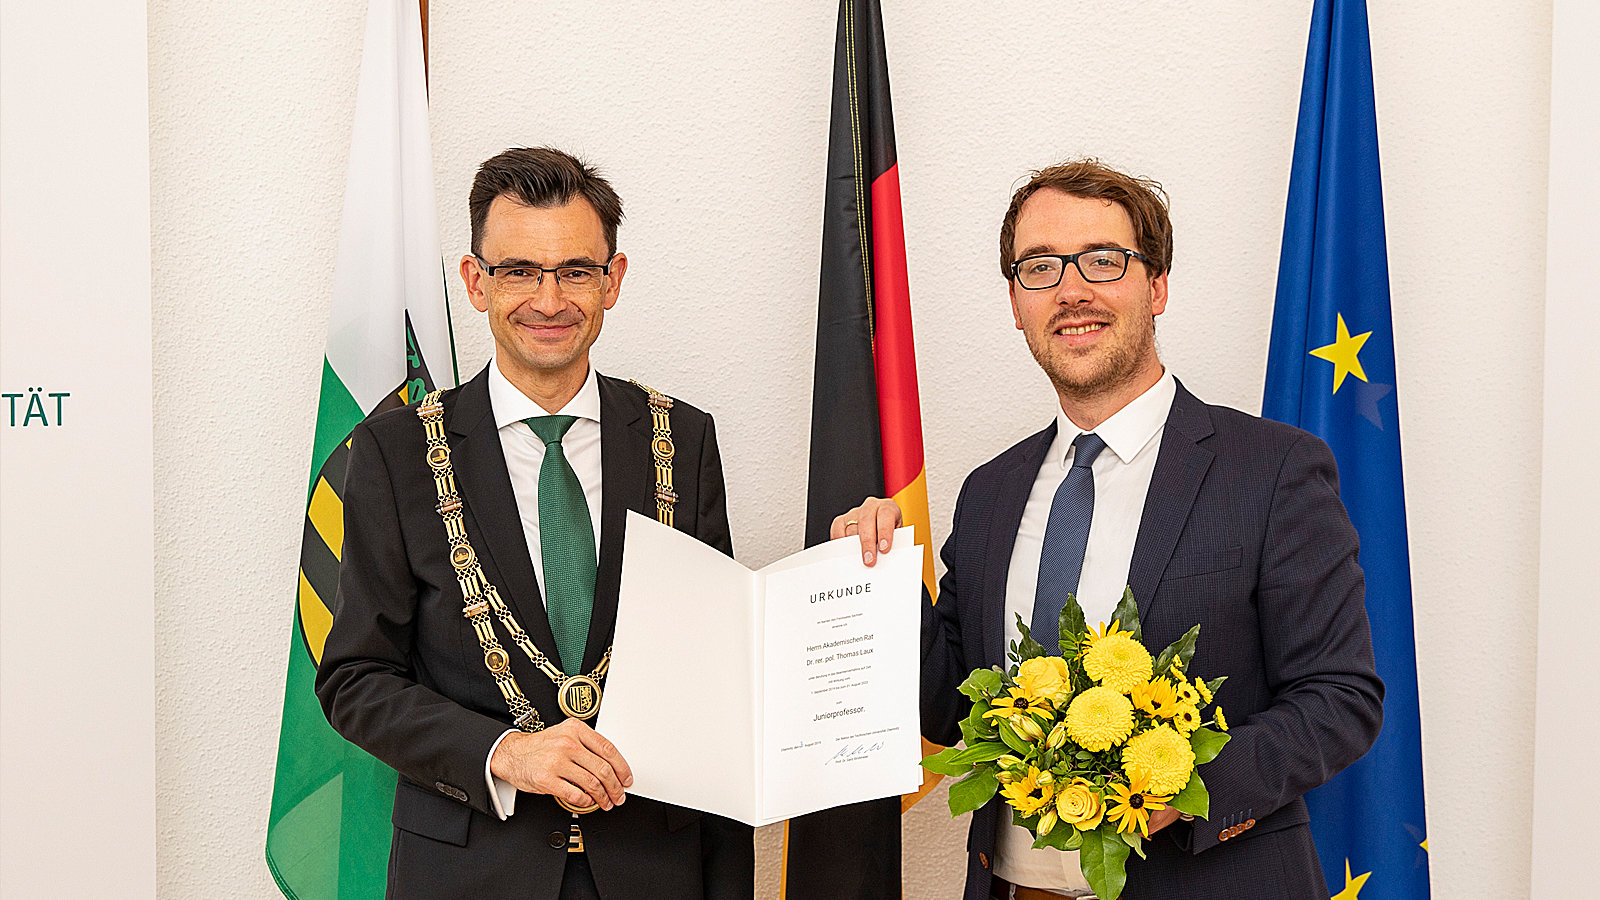 New Appointment at the University | Uni aktuell | TU Chemnitz